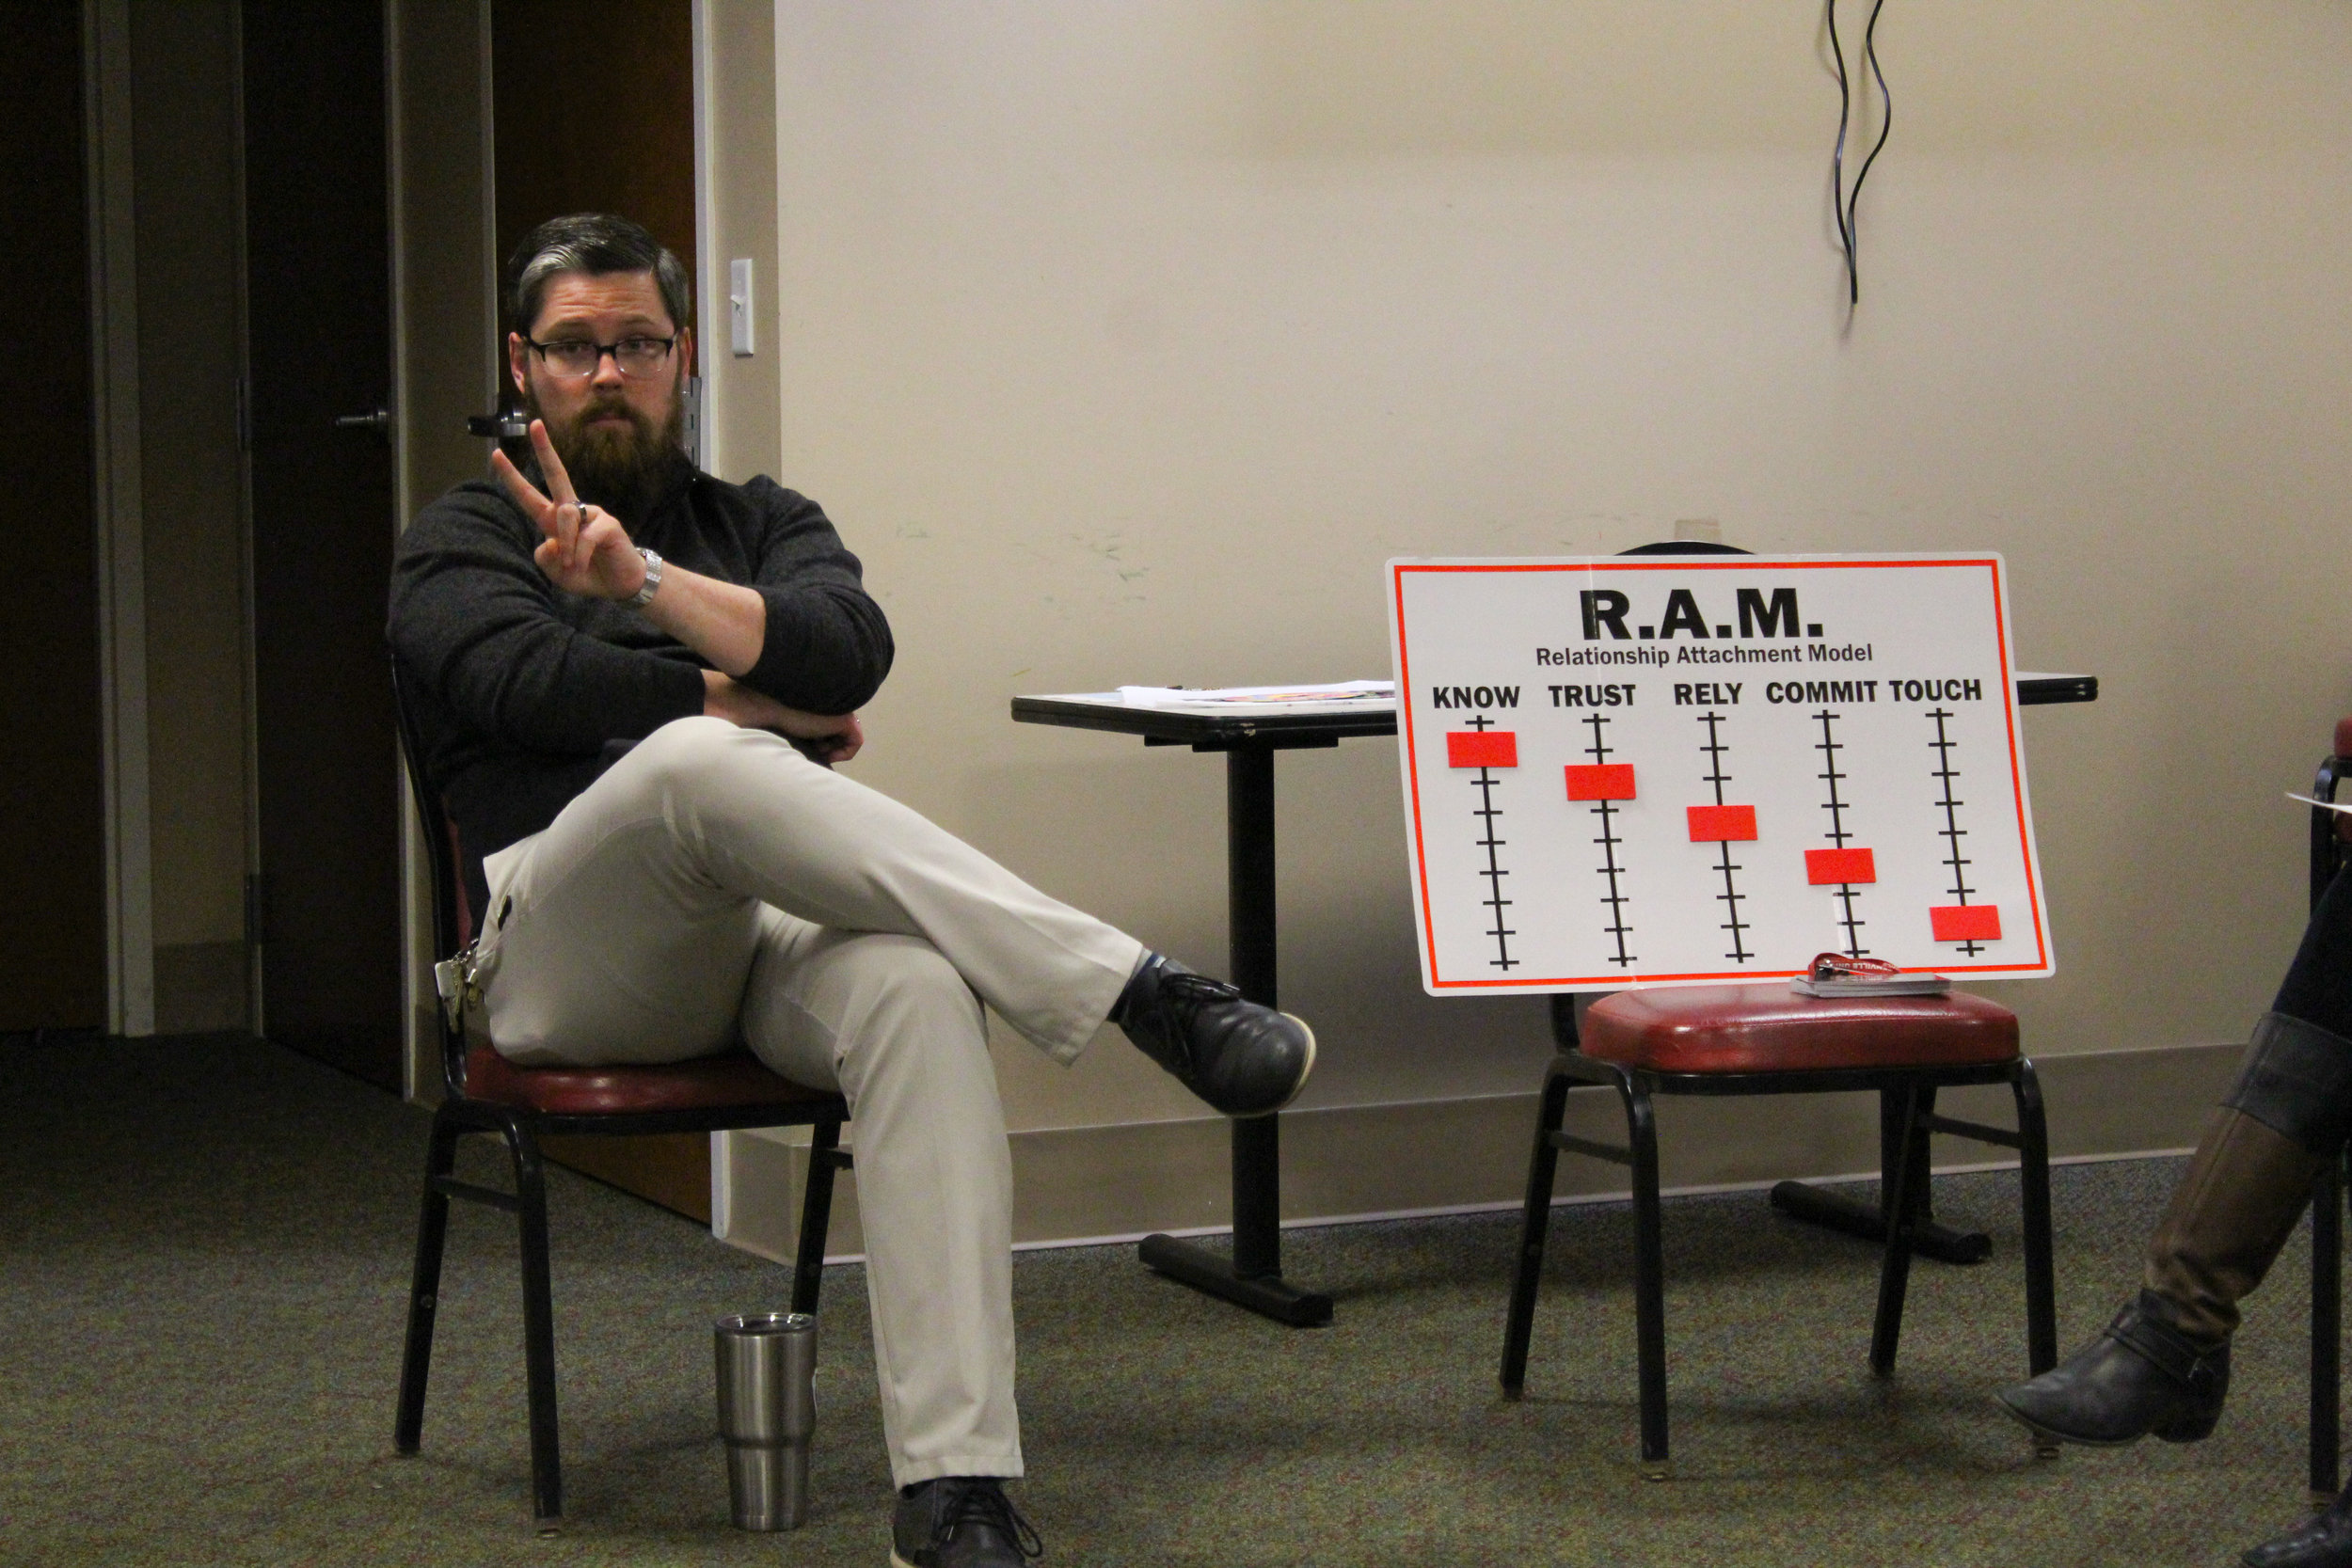 Mr. Thomas describes the R.A.M. model and how it relates to dating during college.